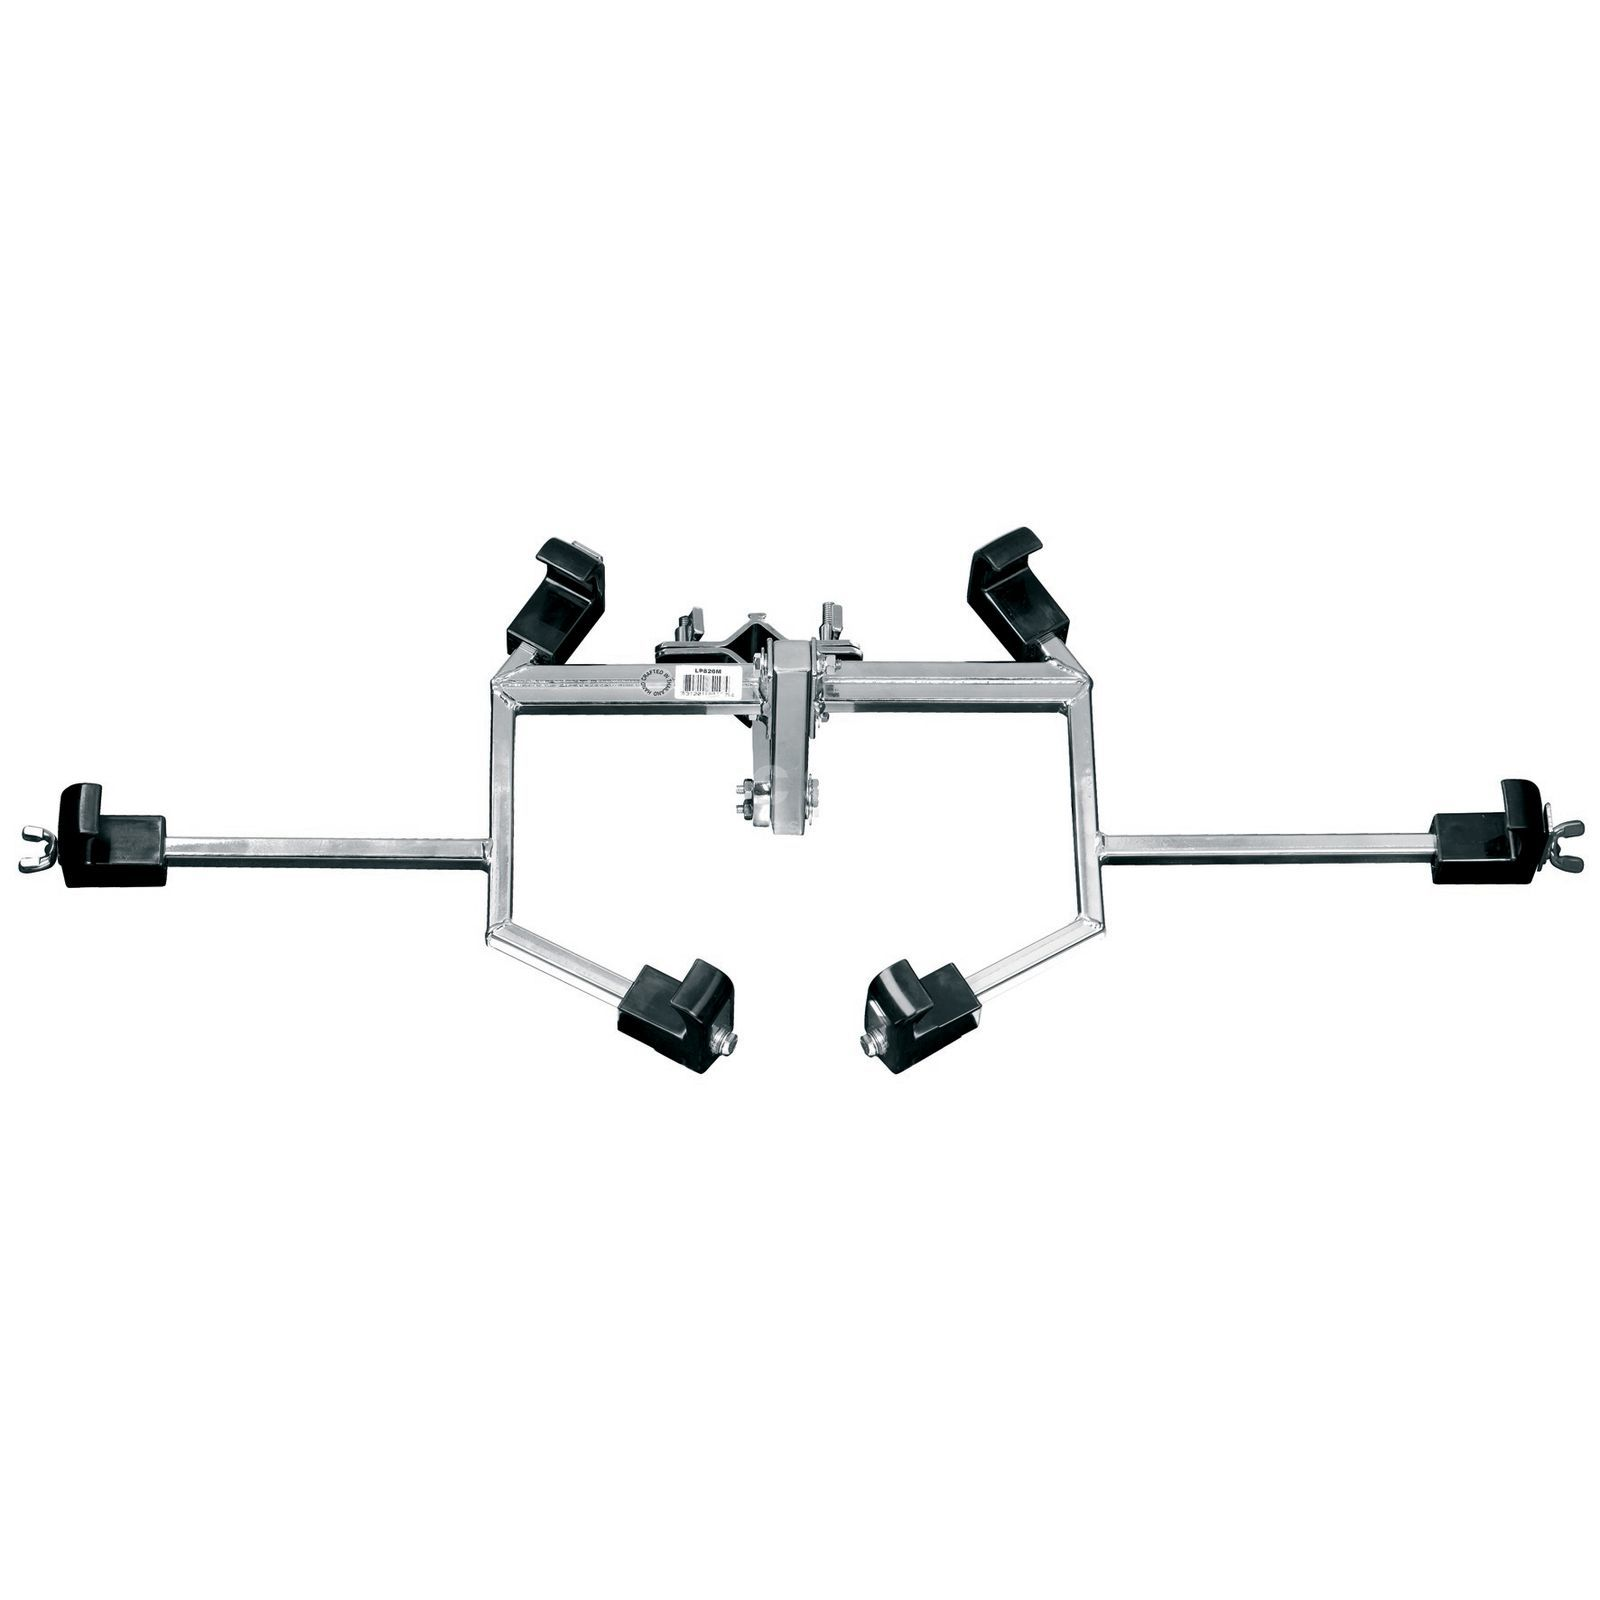 Latin Percussion Compact Conga Mounting System LP826M for Giovanni Series Product Image